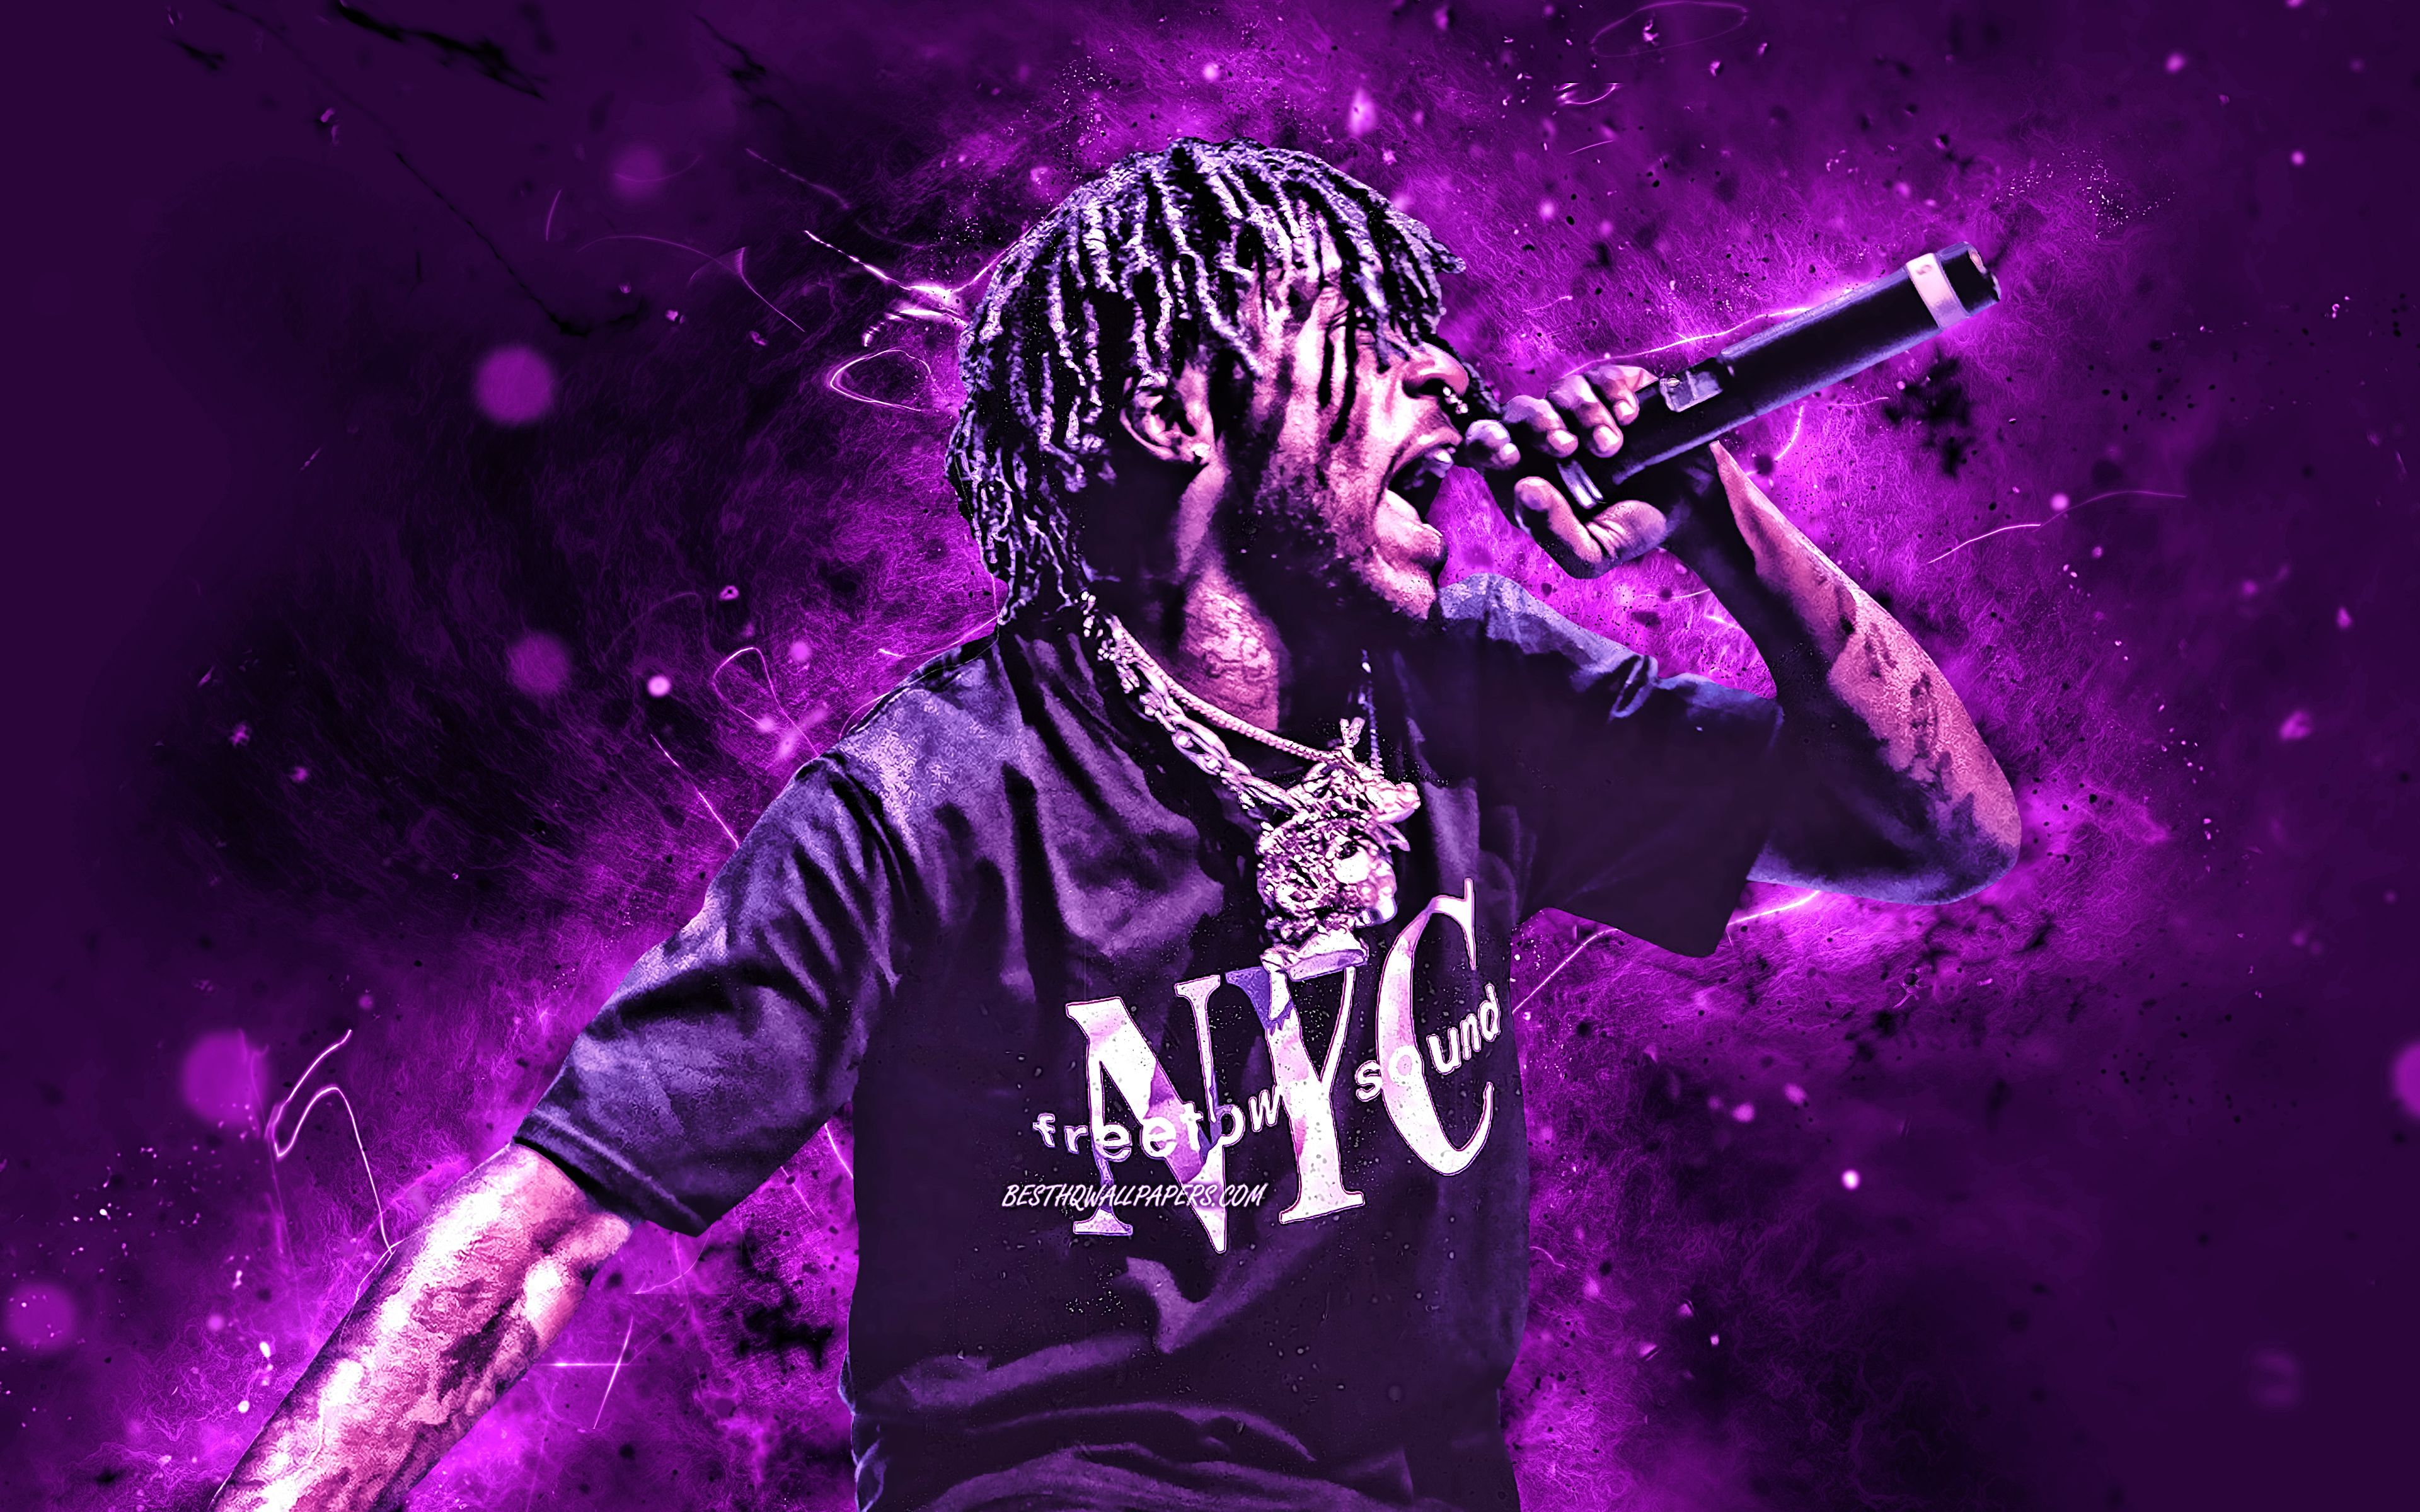 Lil Uzi Vert Concert Computer Wallpapers Wallpaper Cave Find the best free stock images about purple aesthetic. lil uzi vert concert computer